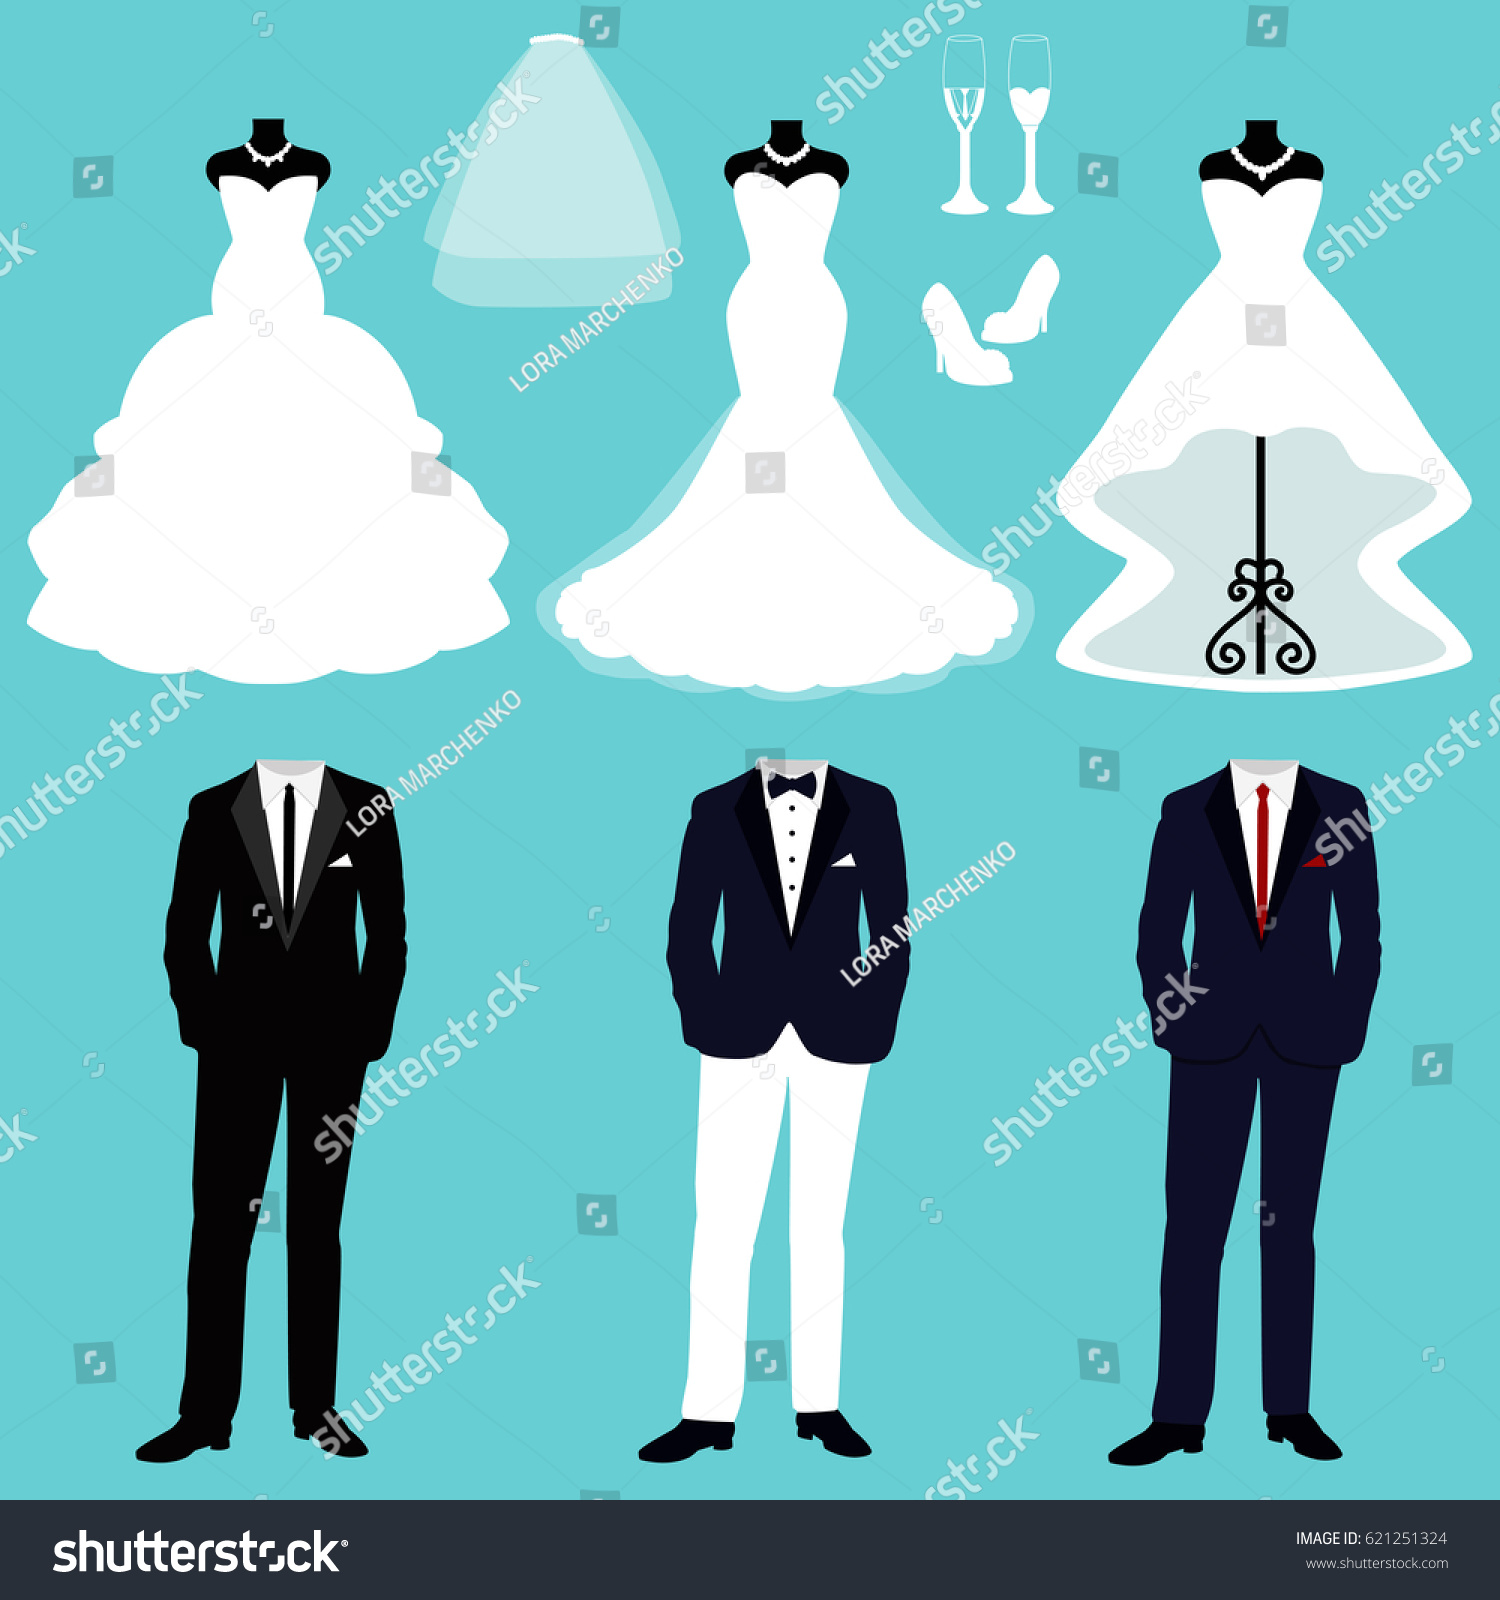 Wedding Card Clothes Bride Groom Set Stock Vector 621251324 ...